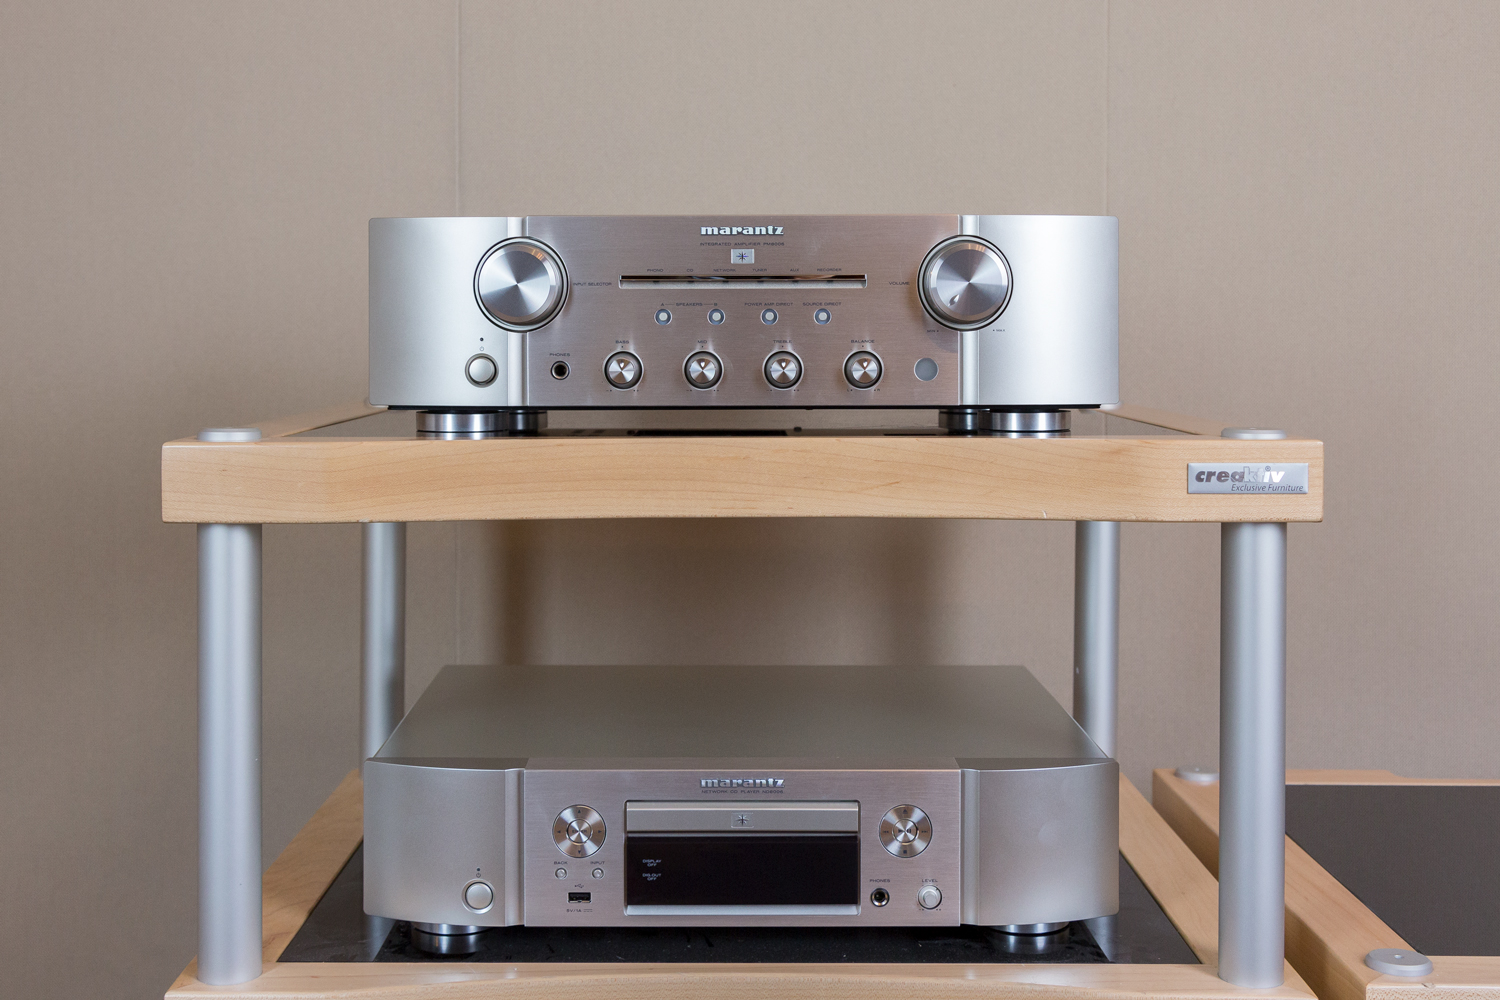 hifi-im-hinterhof-berlin-marantz-pm8006-nd8006